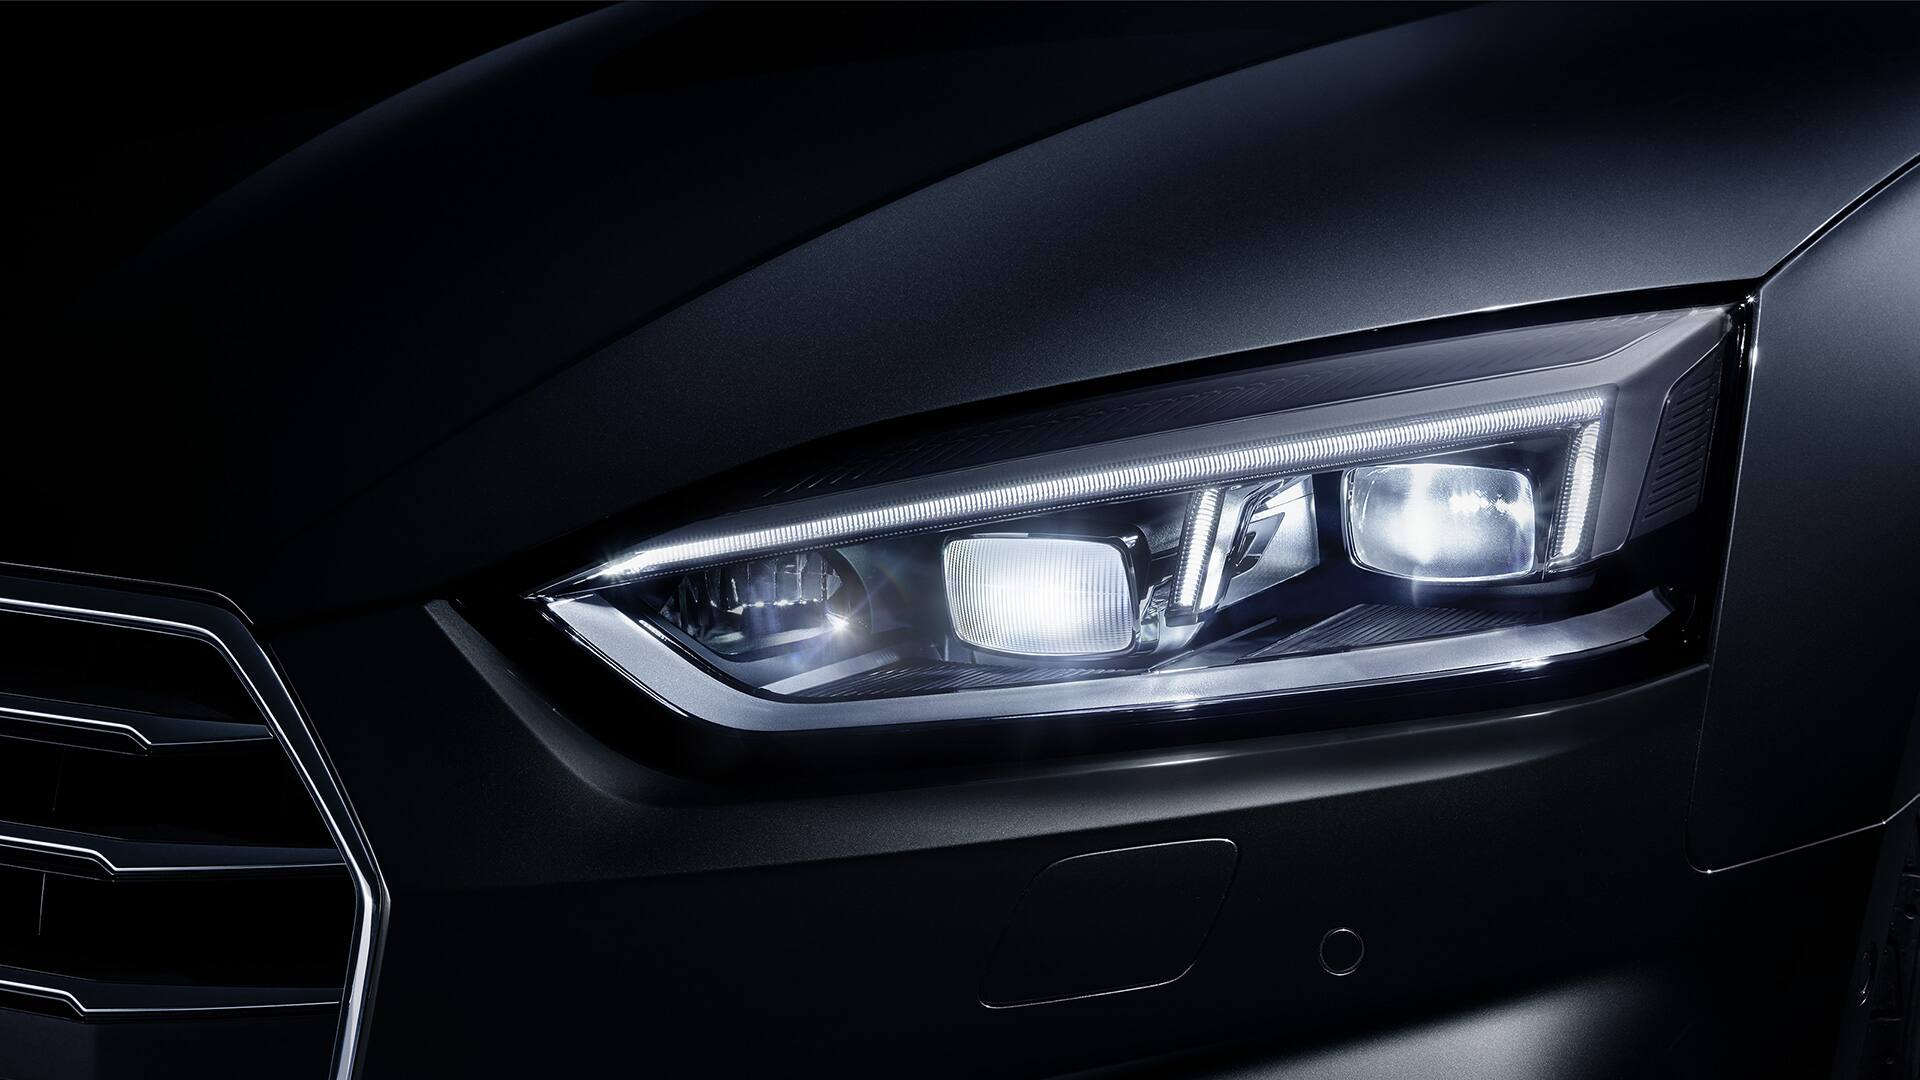 hight resolution of the optional audi matrix led headlights feature highly adaptive light distribution and an attractive design with high recognition value